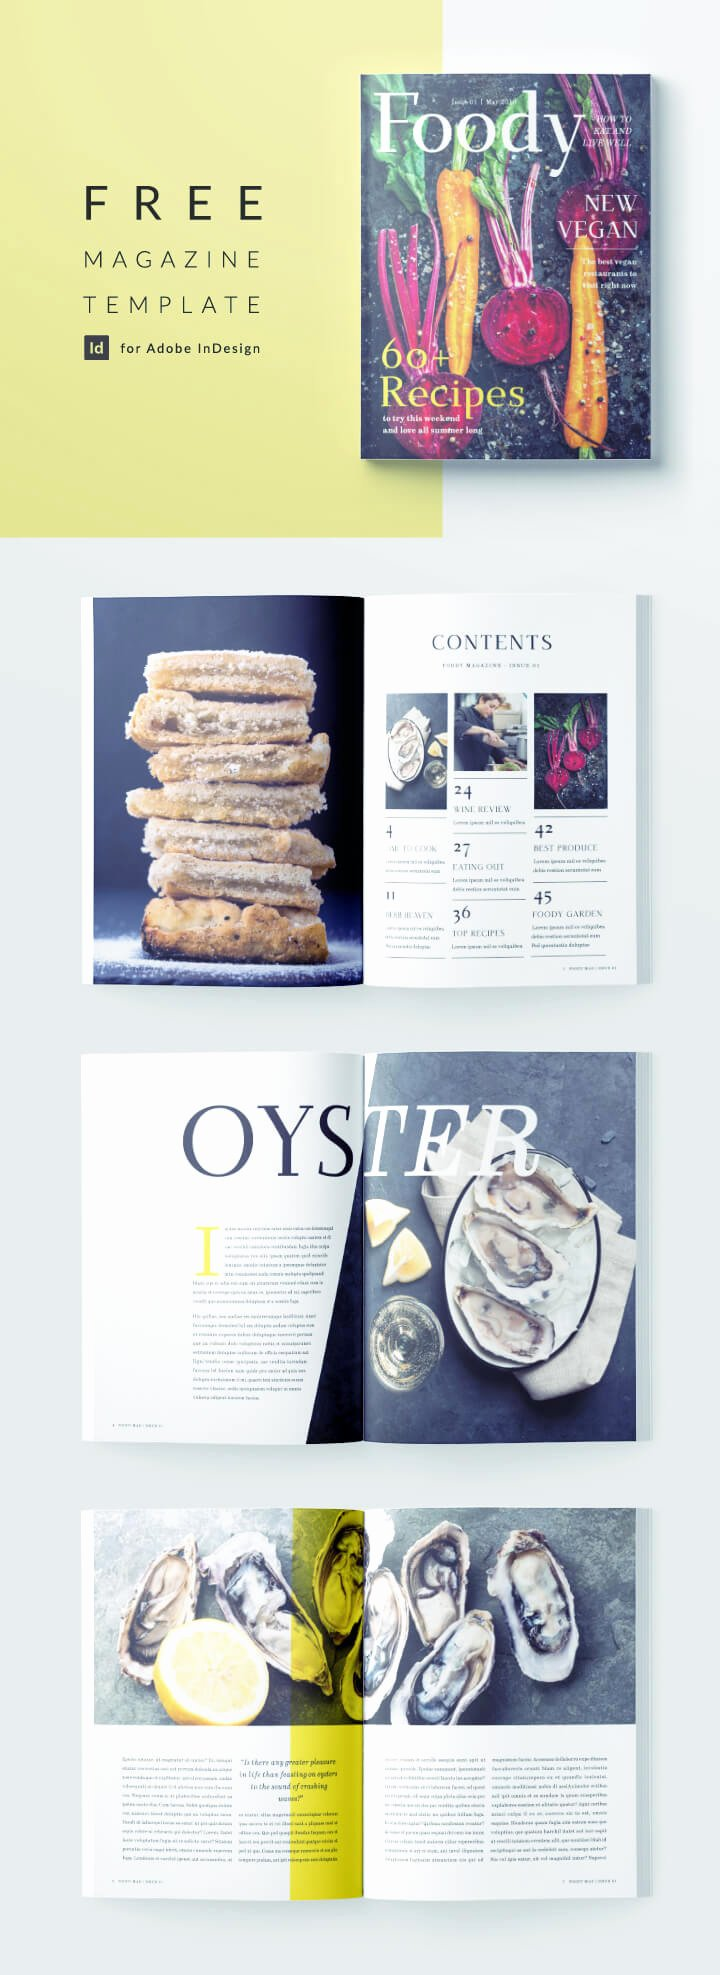 Stylish Food Magazine Template for Indesign